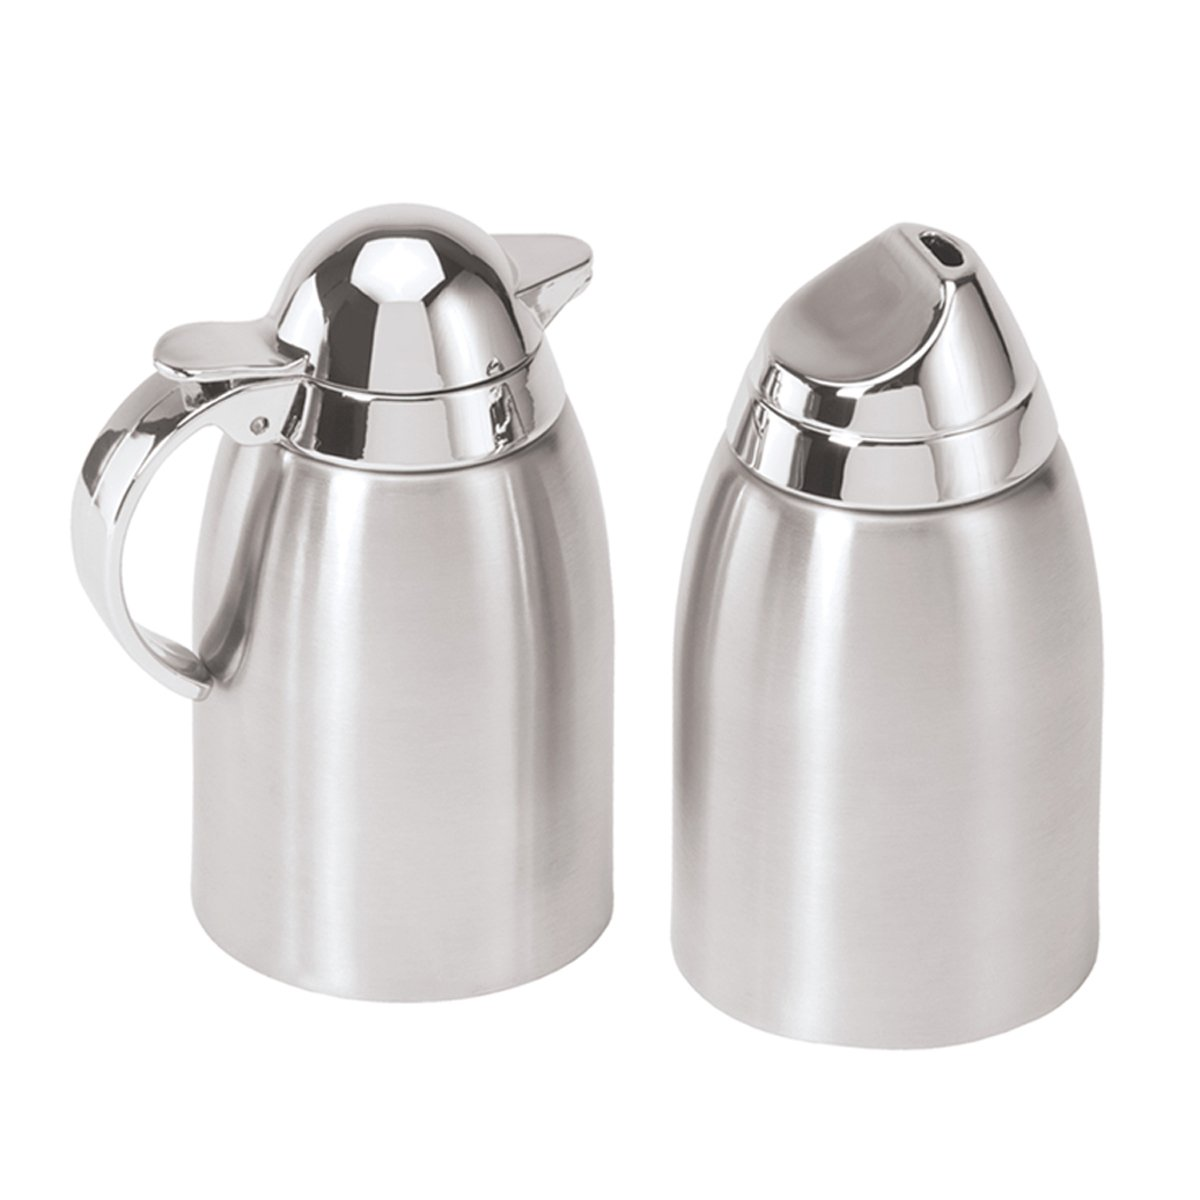 Oggi 7117 Stainless Steel Sugar & Creamer Set with mirror ABS tops